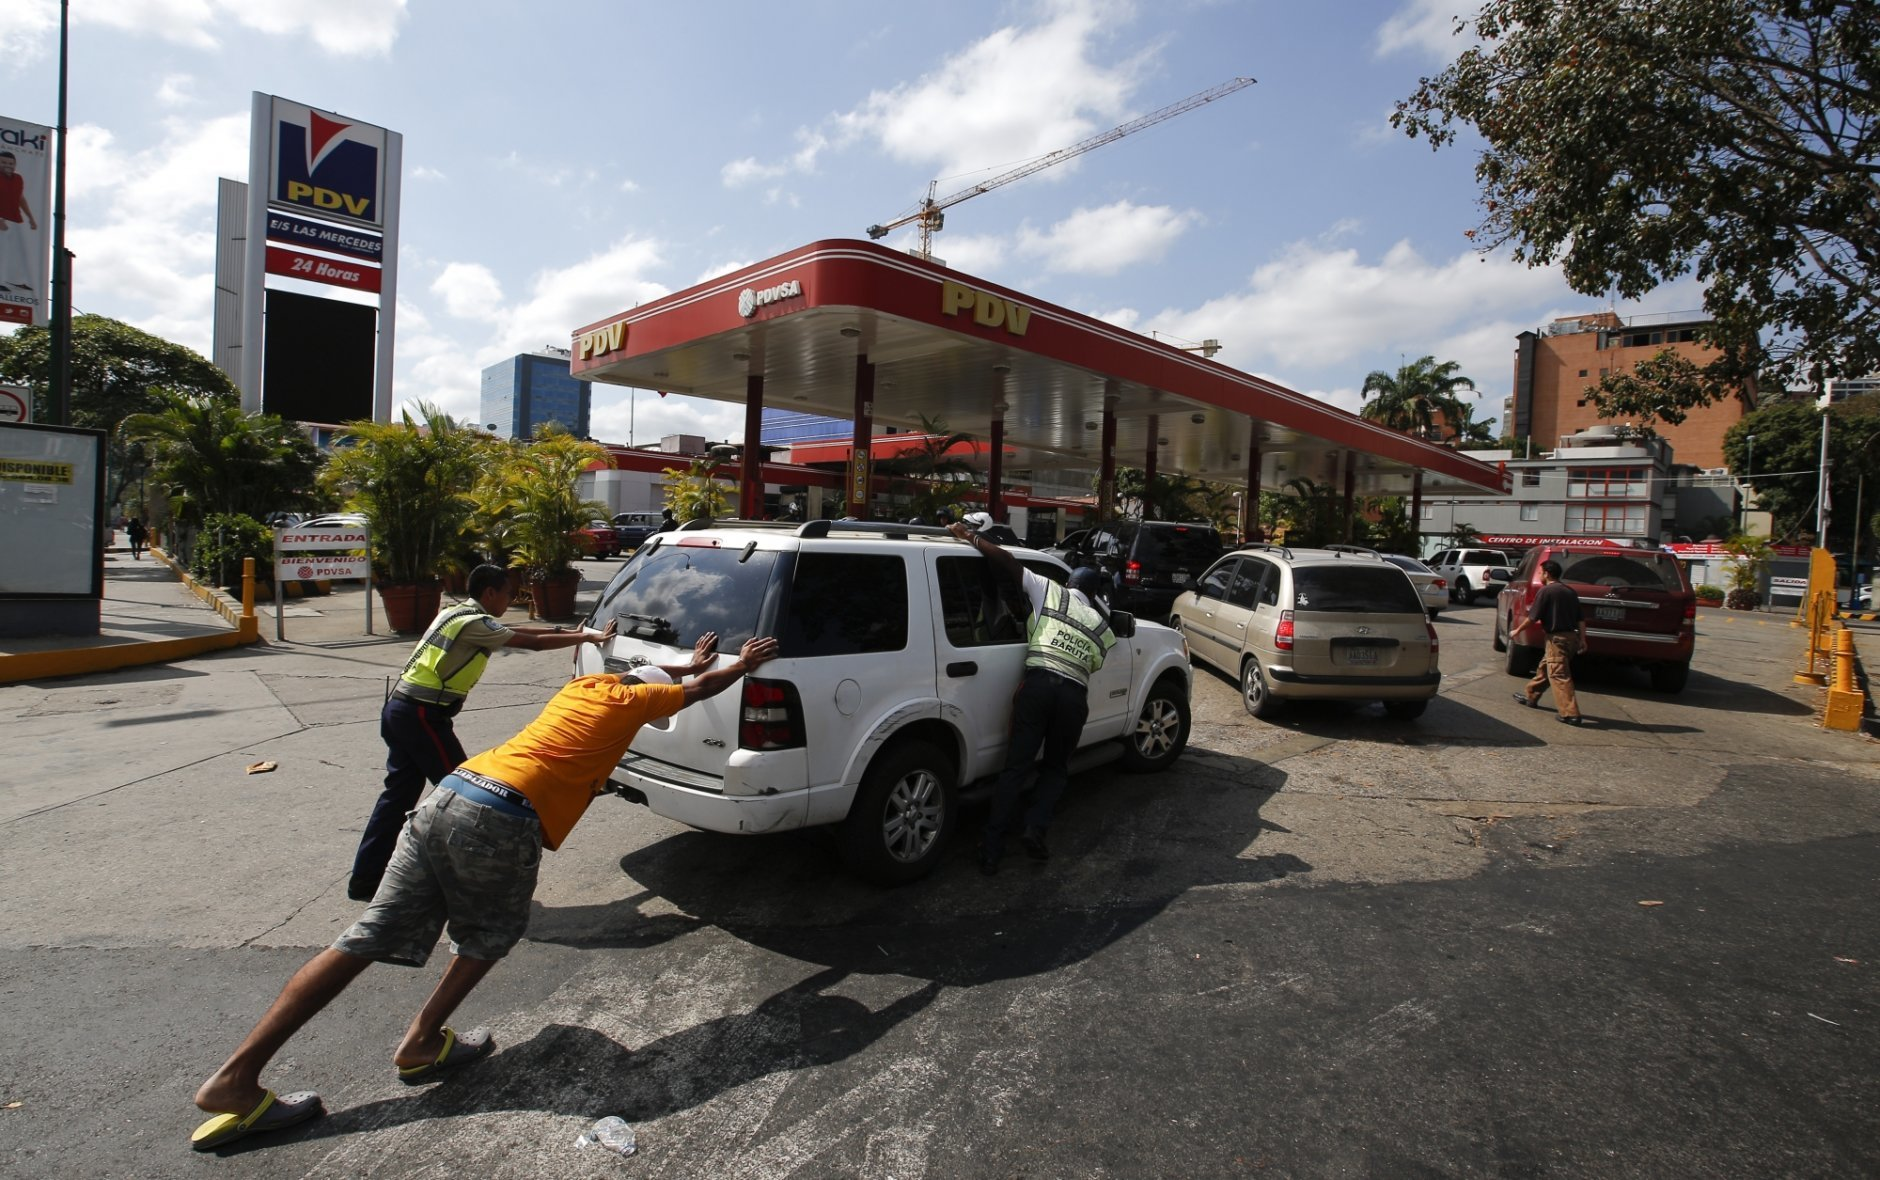 People push a car without fuel to one of the few gas stations that has its own electric generator during an electricity blackout in Caracas, Venezuela, Sunday, March 10, 2019. Power and communications outages continue to hit Venezuela, intensifying the hardship of a country paralyzed by economic and political crisis and heightening tension between the bitterly divided factions which accuse each other of being responsible for the collapse of the power grid. (AP Photo/Eduardo Verdugo)